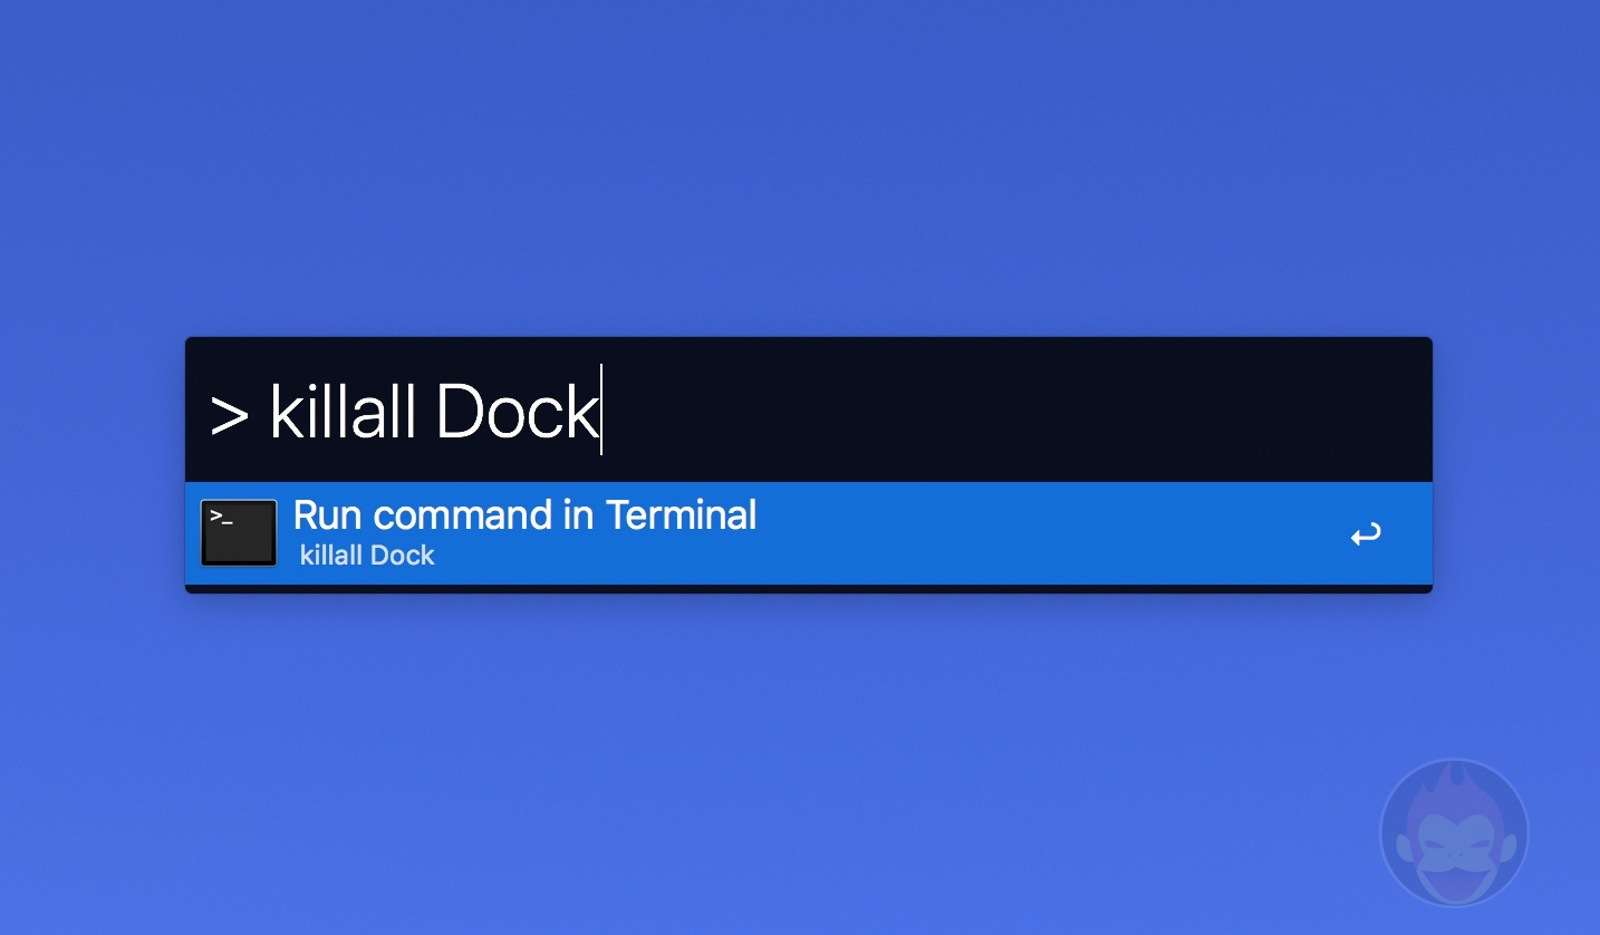 kill all dock